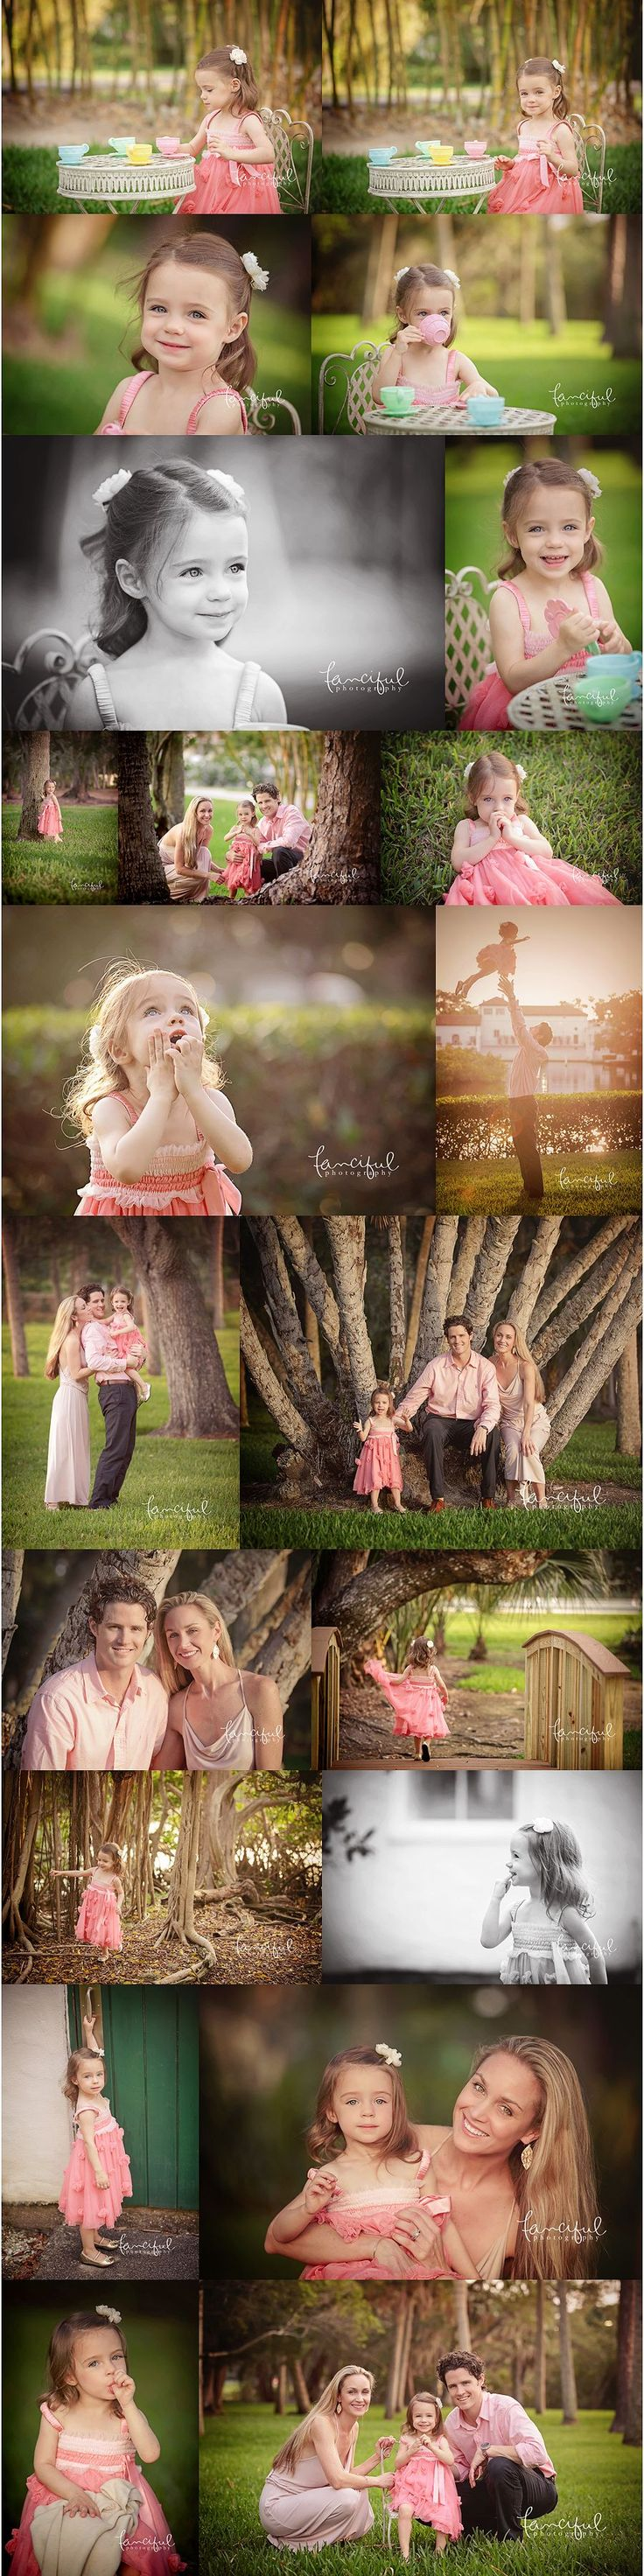 Lifestyle child portraits.  Tea party portraits.  Toddler portraits, Family Portrait session. Sarasota Child and Family Photographer | http://fancifulphotography.com